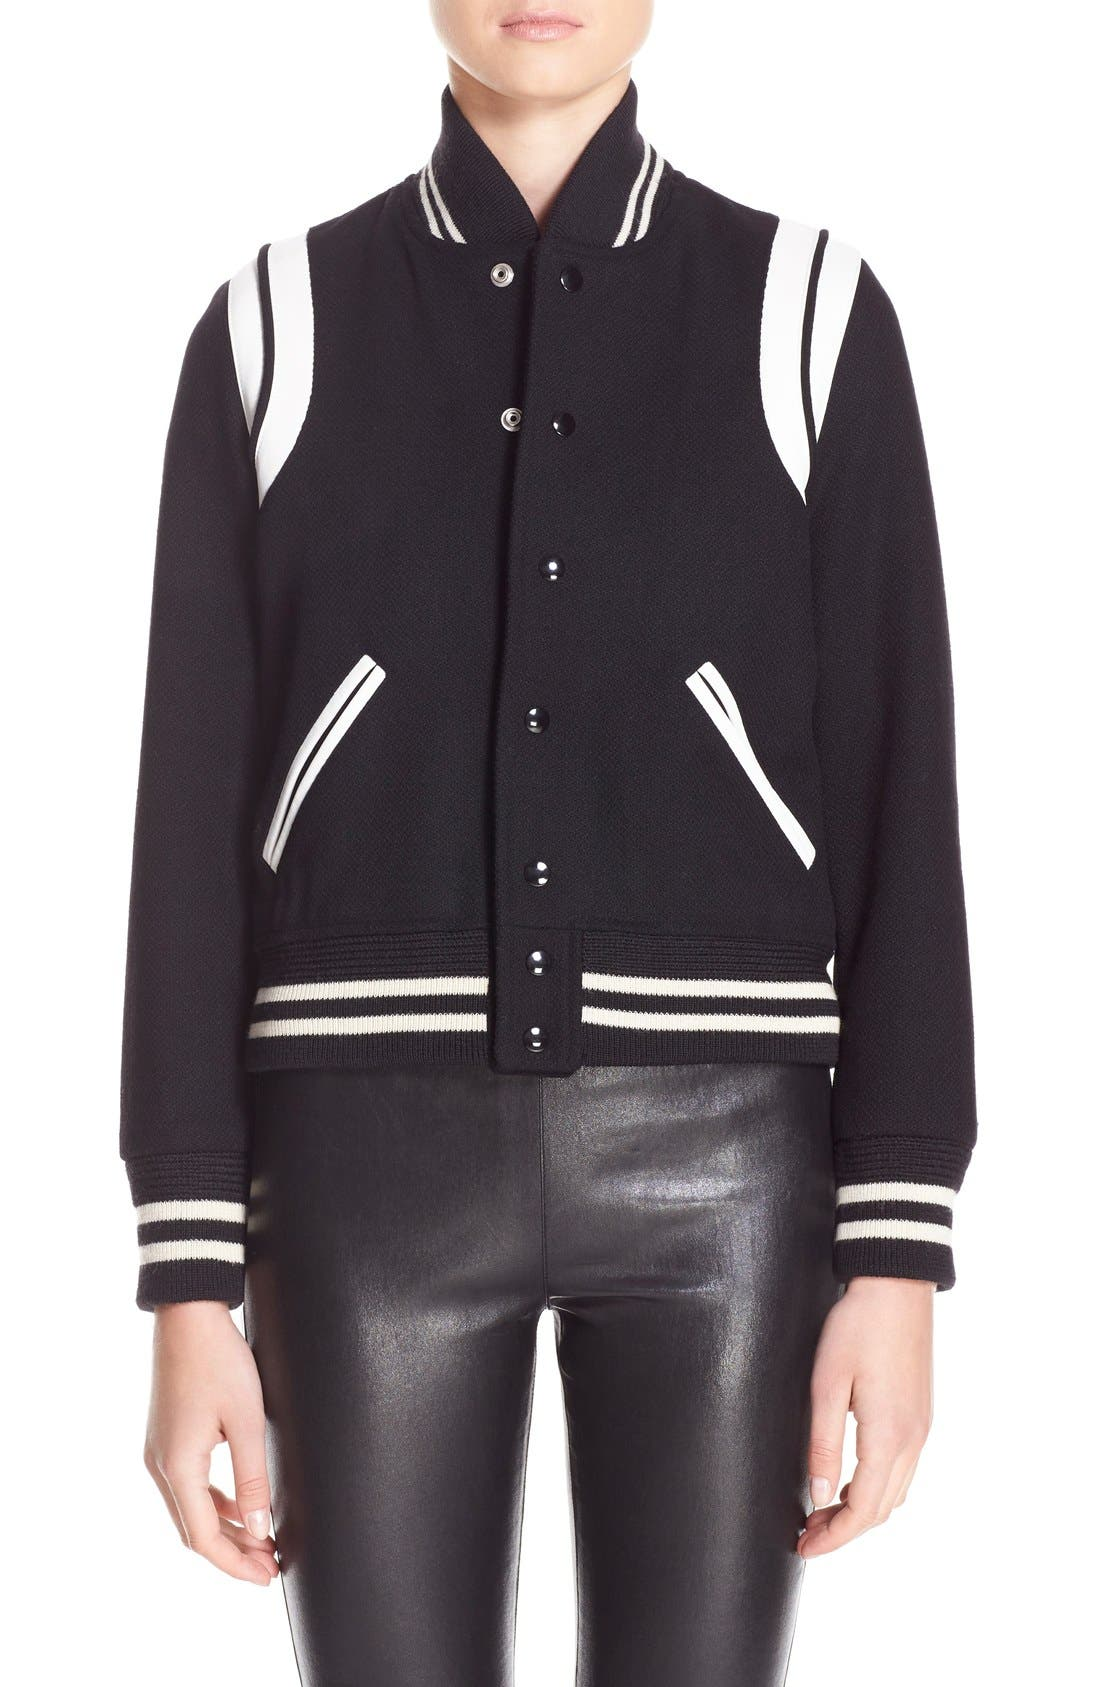 Alternate Image 1 Selected - Saint Laurent 'Teddy' White Leather Trim Bomber Jacket